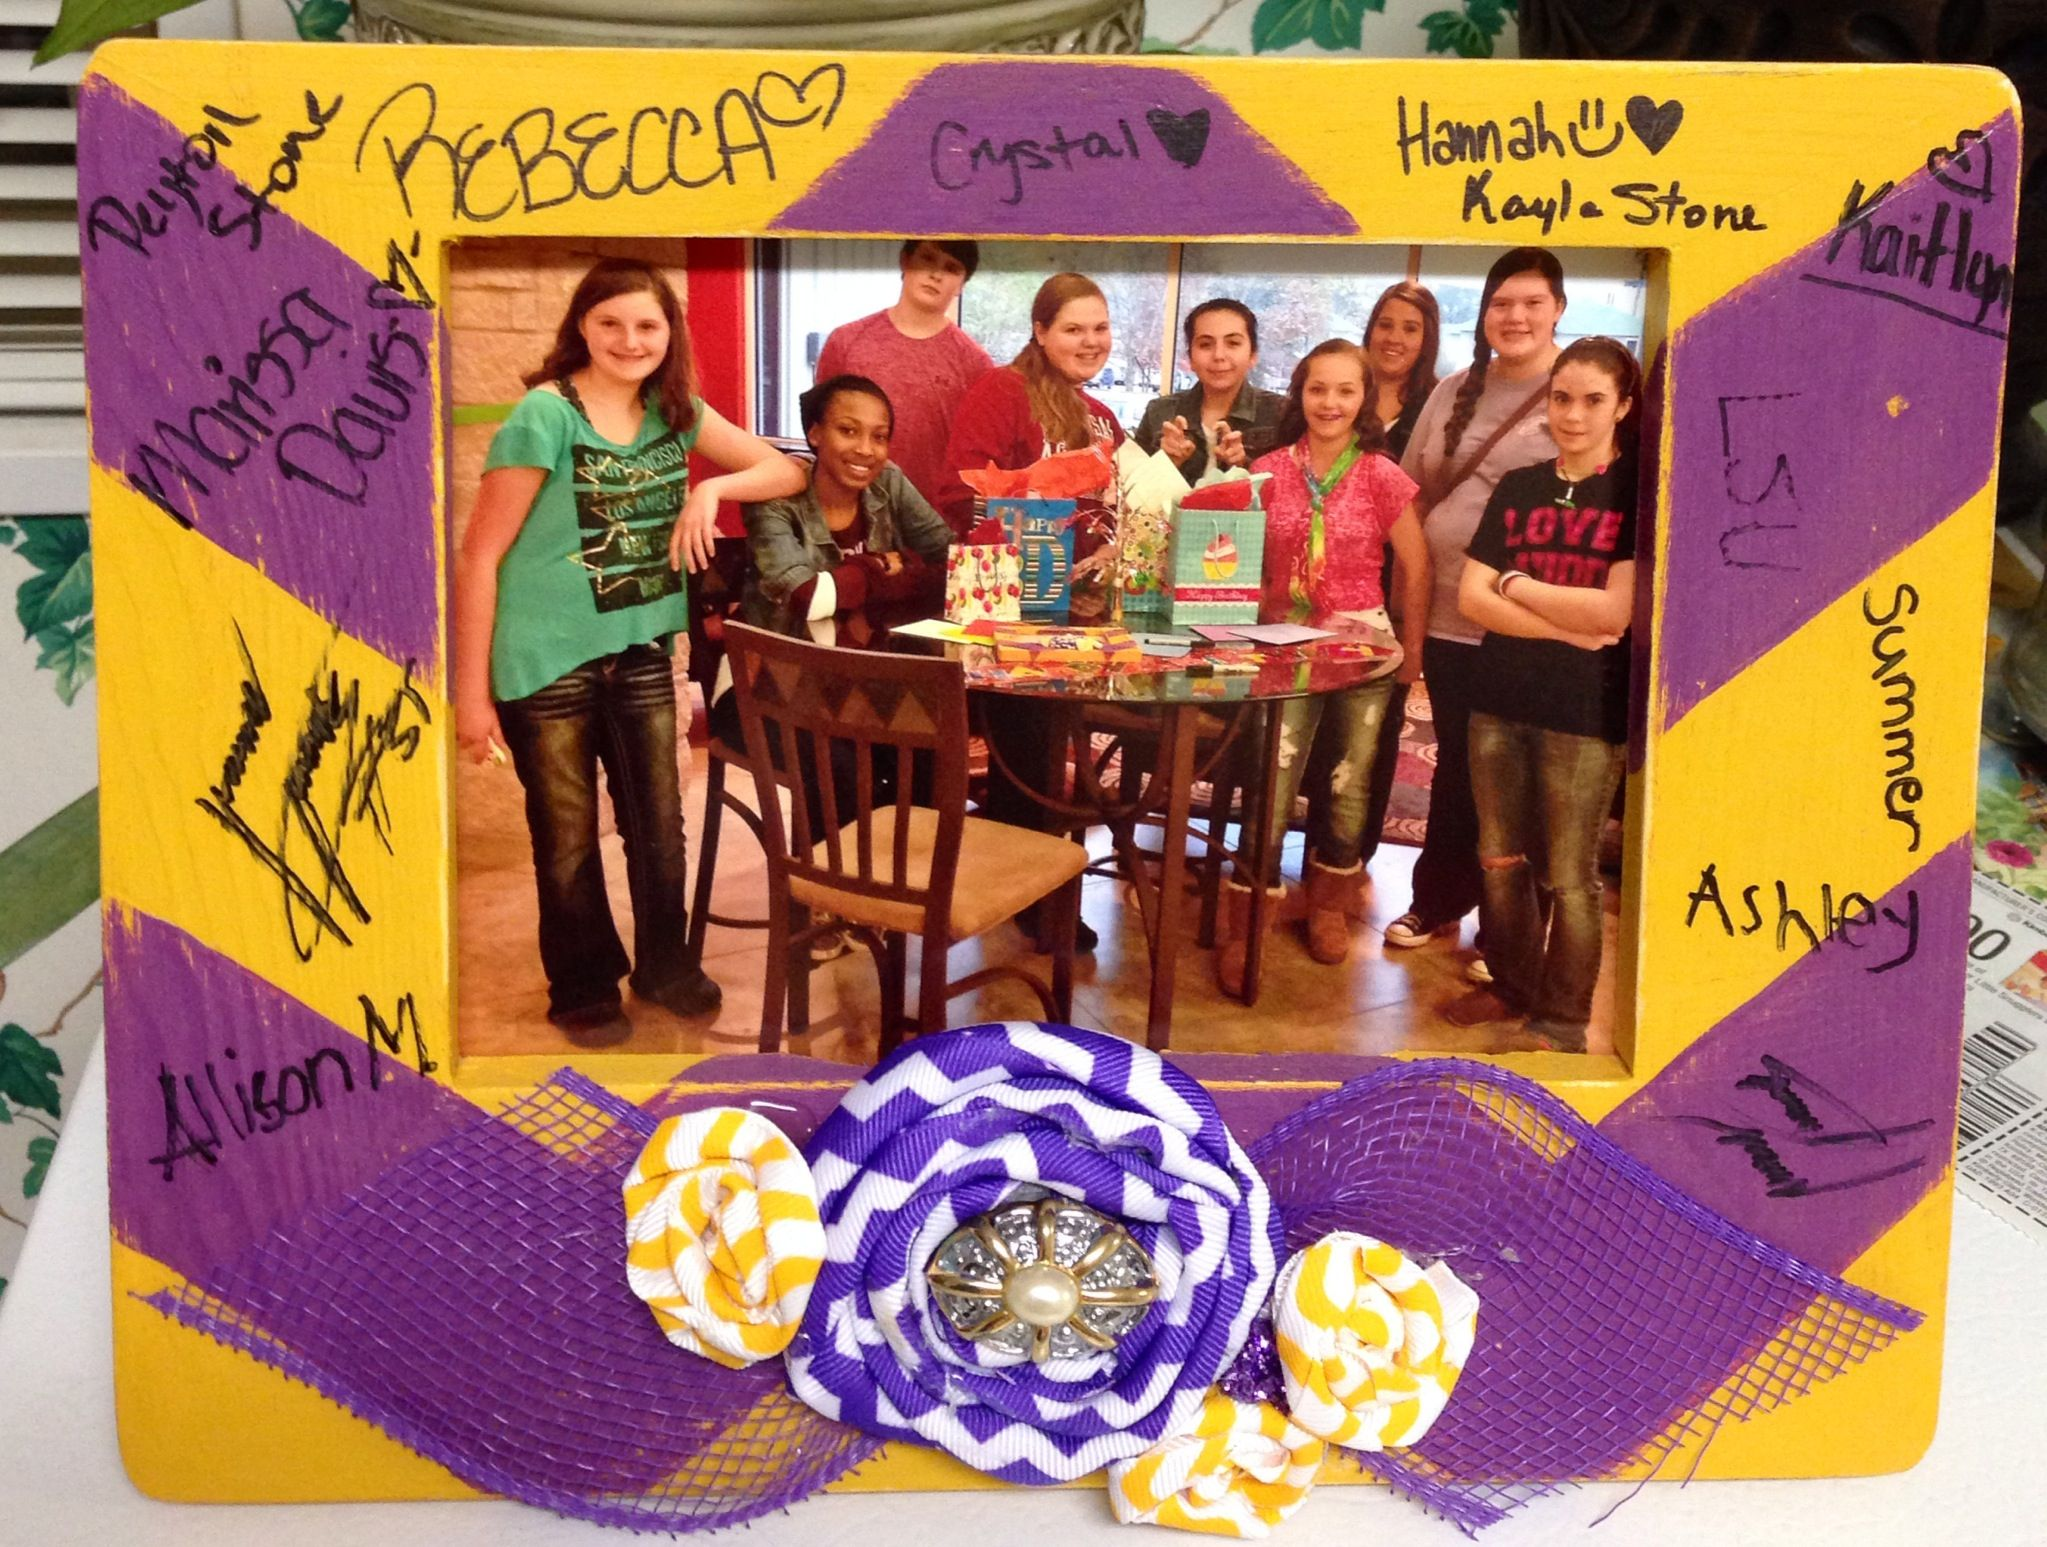 Hand painted picture frame to go along with my daughter's LSU themed surprise party. I had her friends sign it & put their group pic in it.